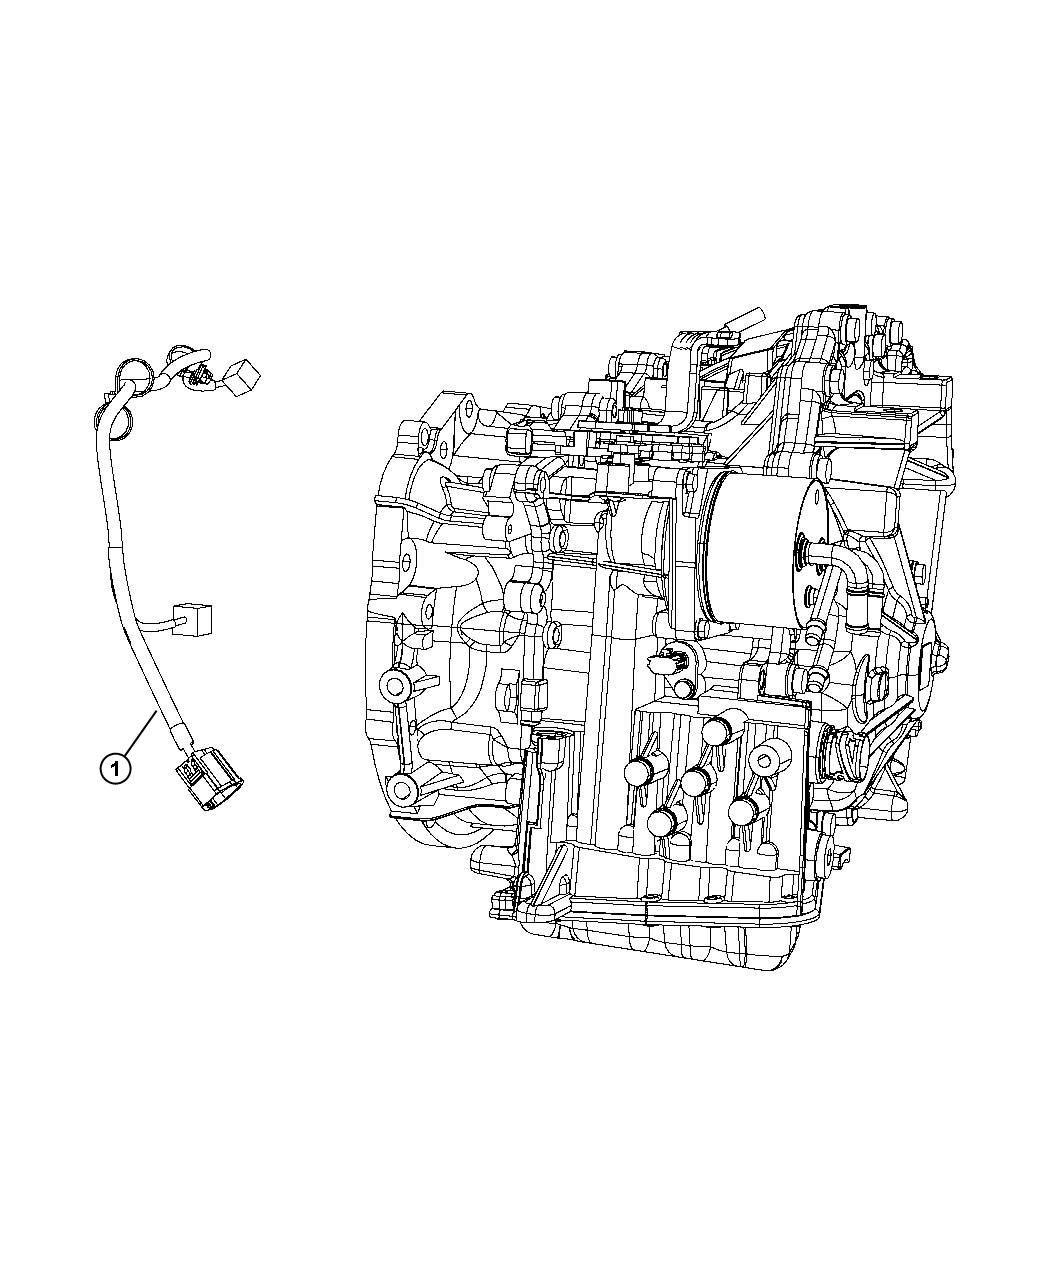 Jeep Compass Wiring Transmission Power Train Parts